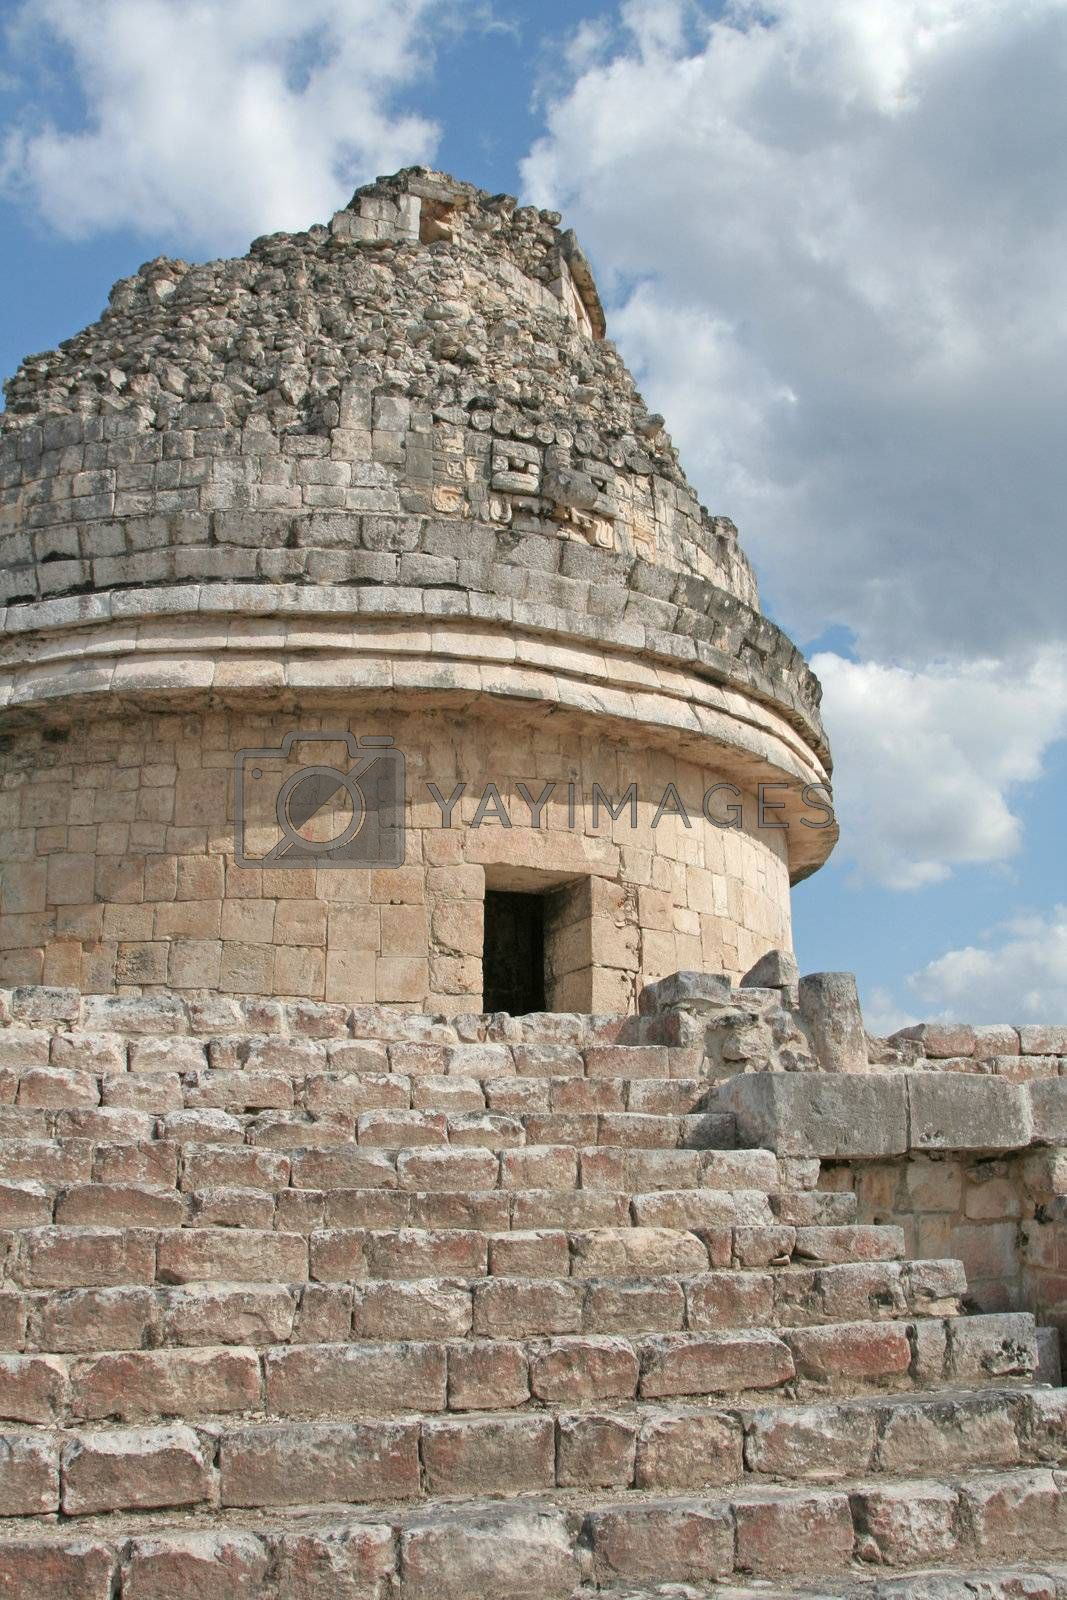 El Caracol is an astronomical observatory at Chichen Itza (Mayan ruins) in Mexico.